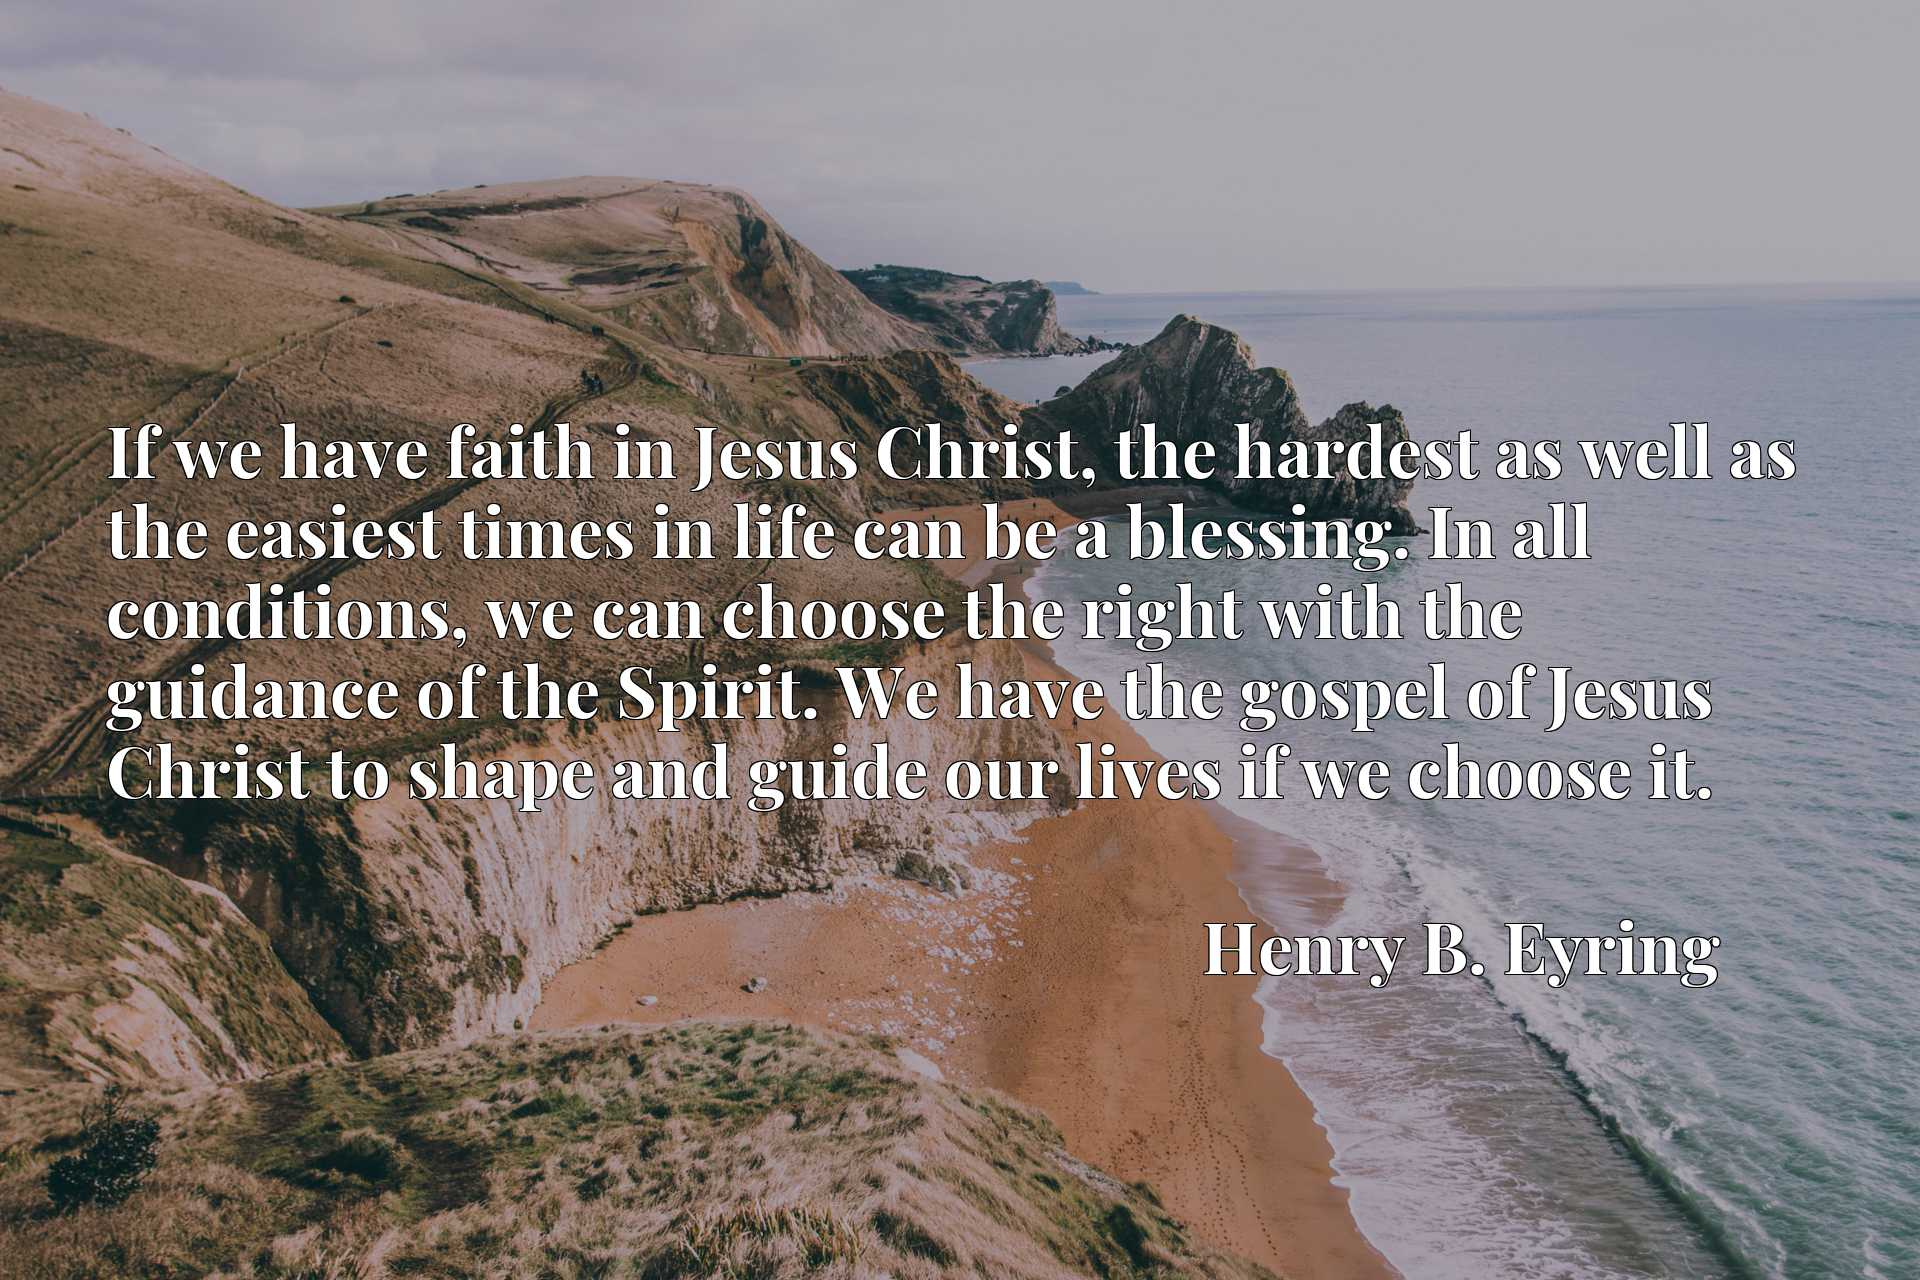 If we have faith in Jesus Christ, the hardest as well as the easiest times in life can be a blessing. In all conditions, we can choose the right with the guidance of the Spirit. We have the gospel of Jesus Christ to shape and guide our lives if we choose it.